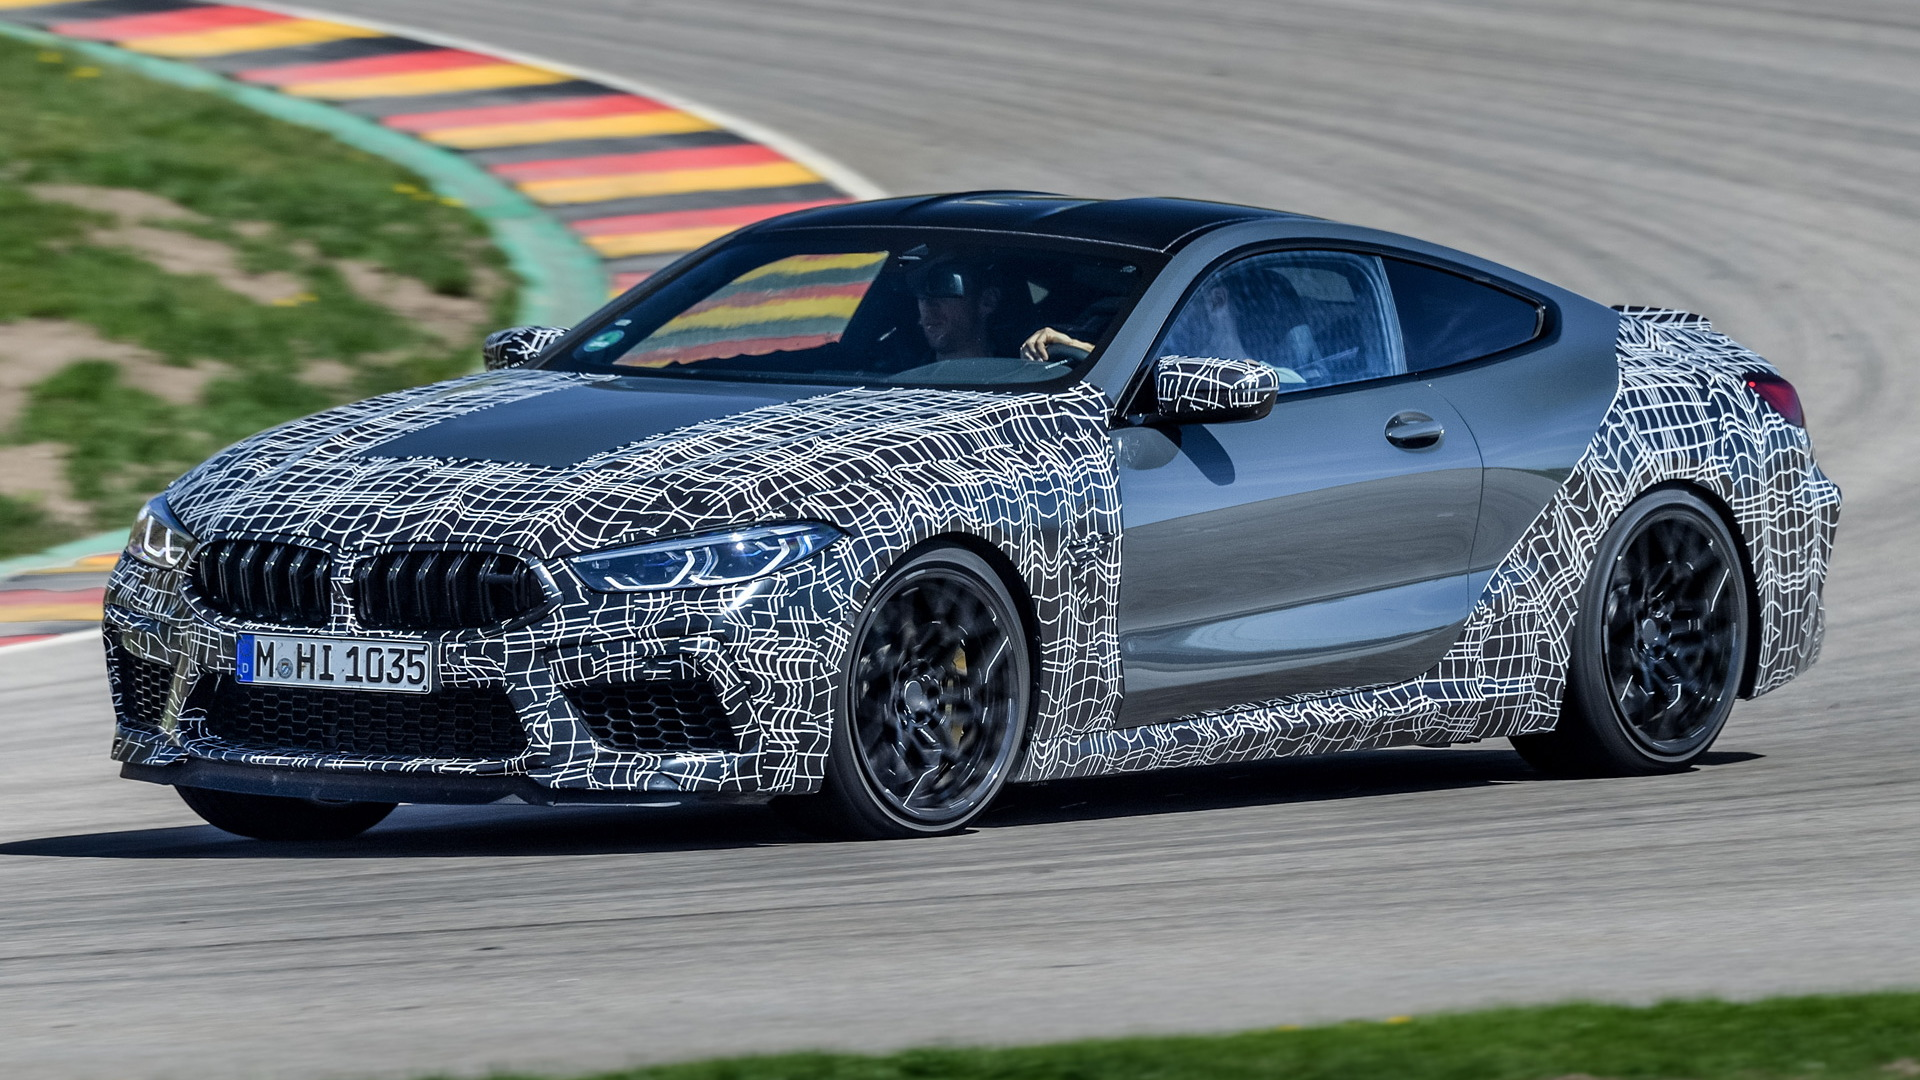 A harder, track focused BMW M8 Competition is coming